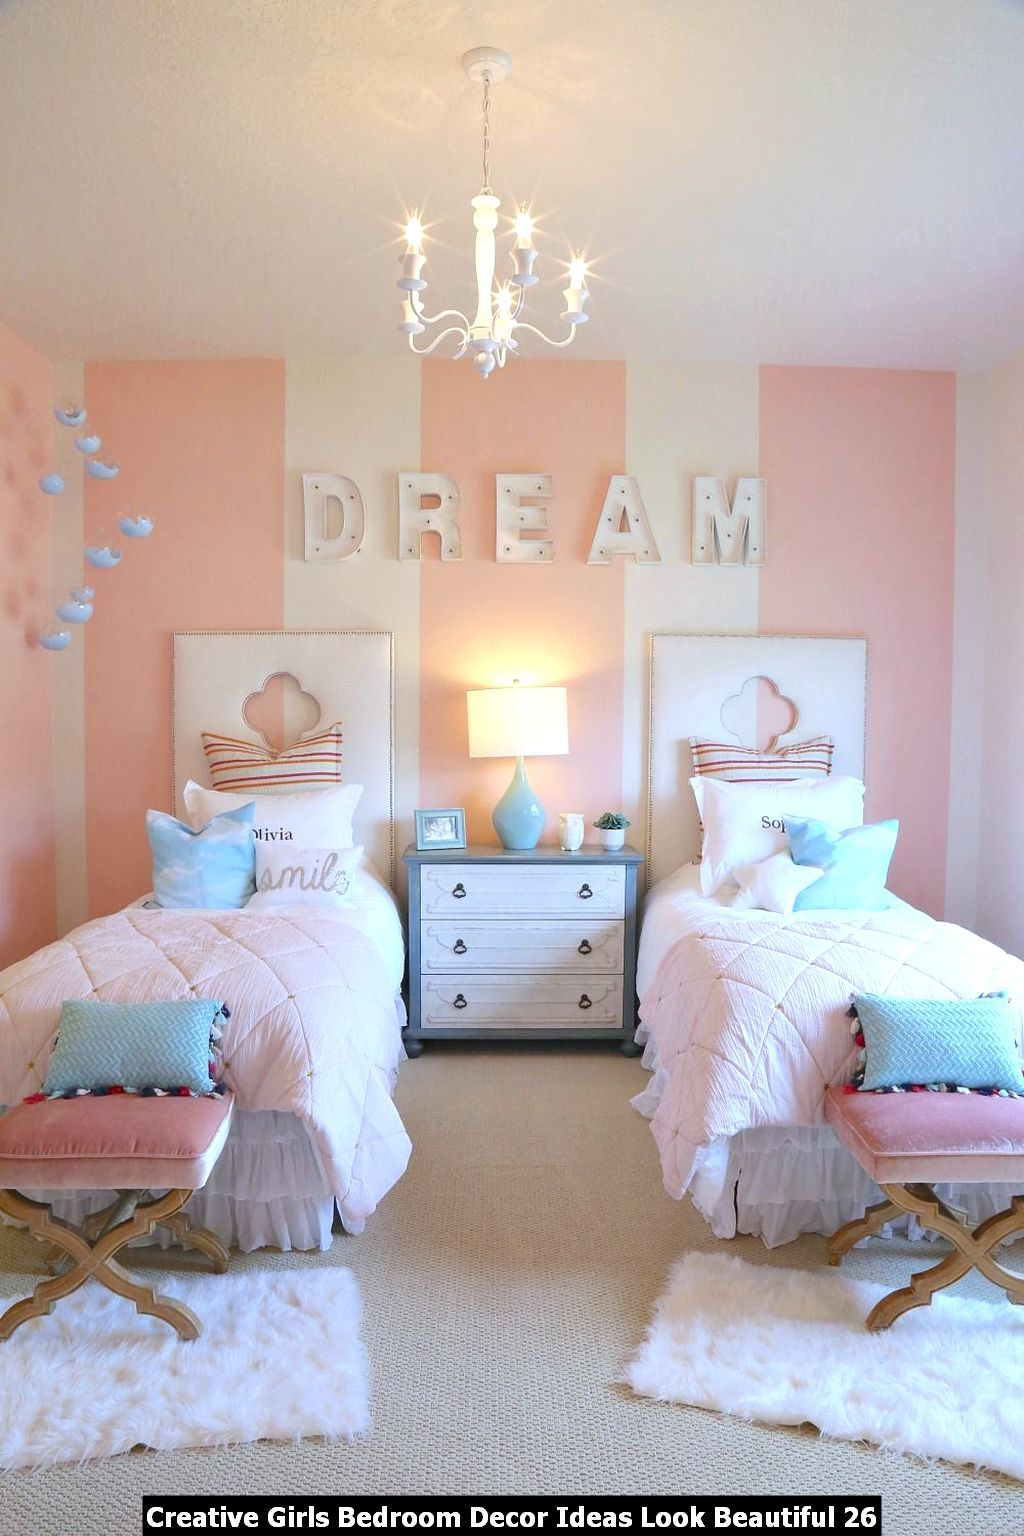 Creative Girls Bedroom Decor Ideas Look Beautiful 26